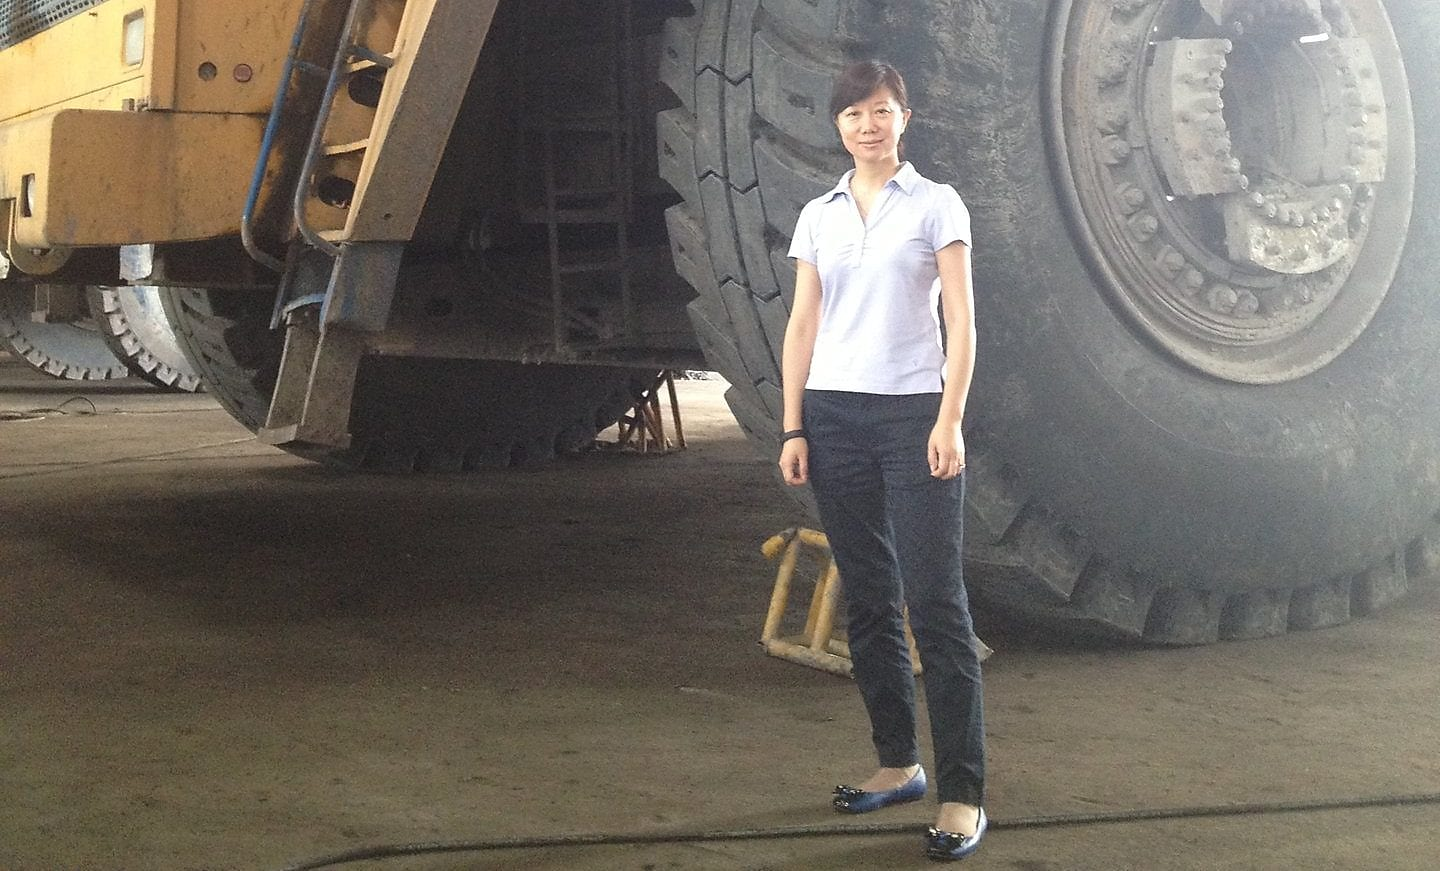 Jessica Zhu standing in front of large machinery.